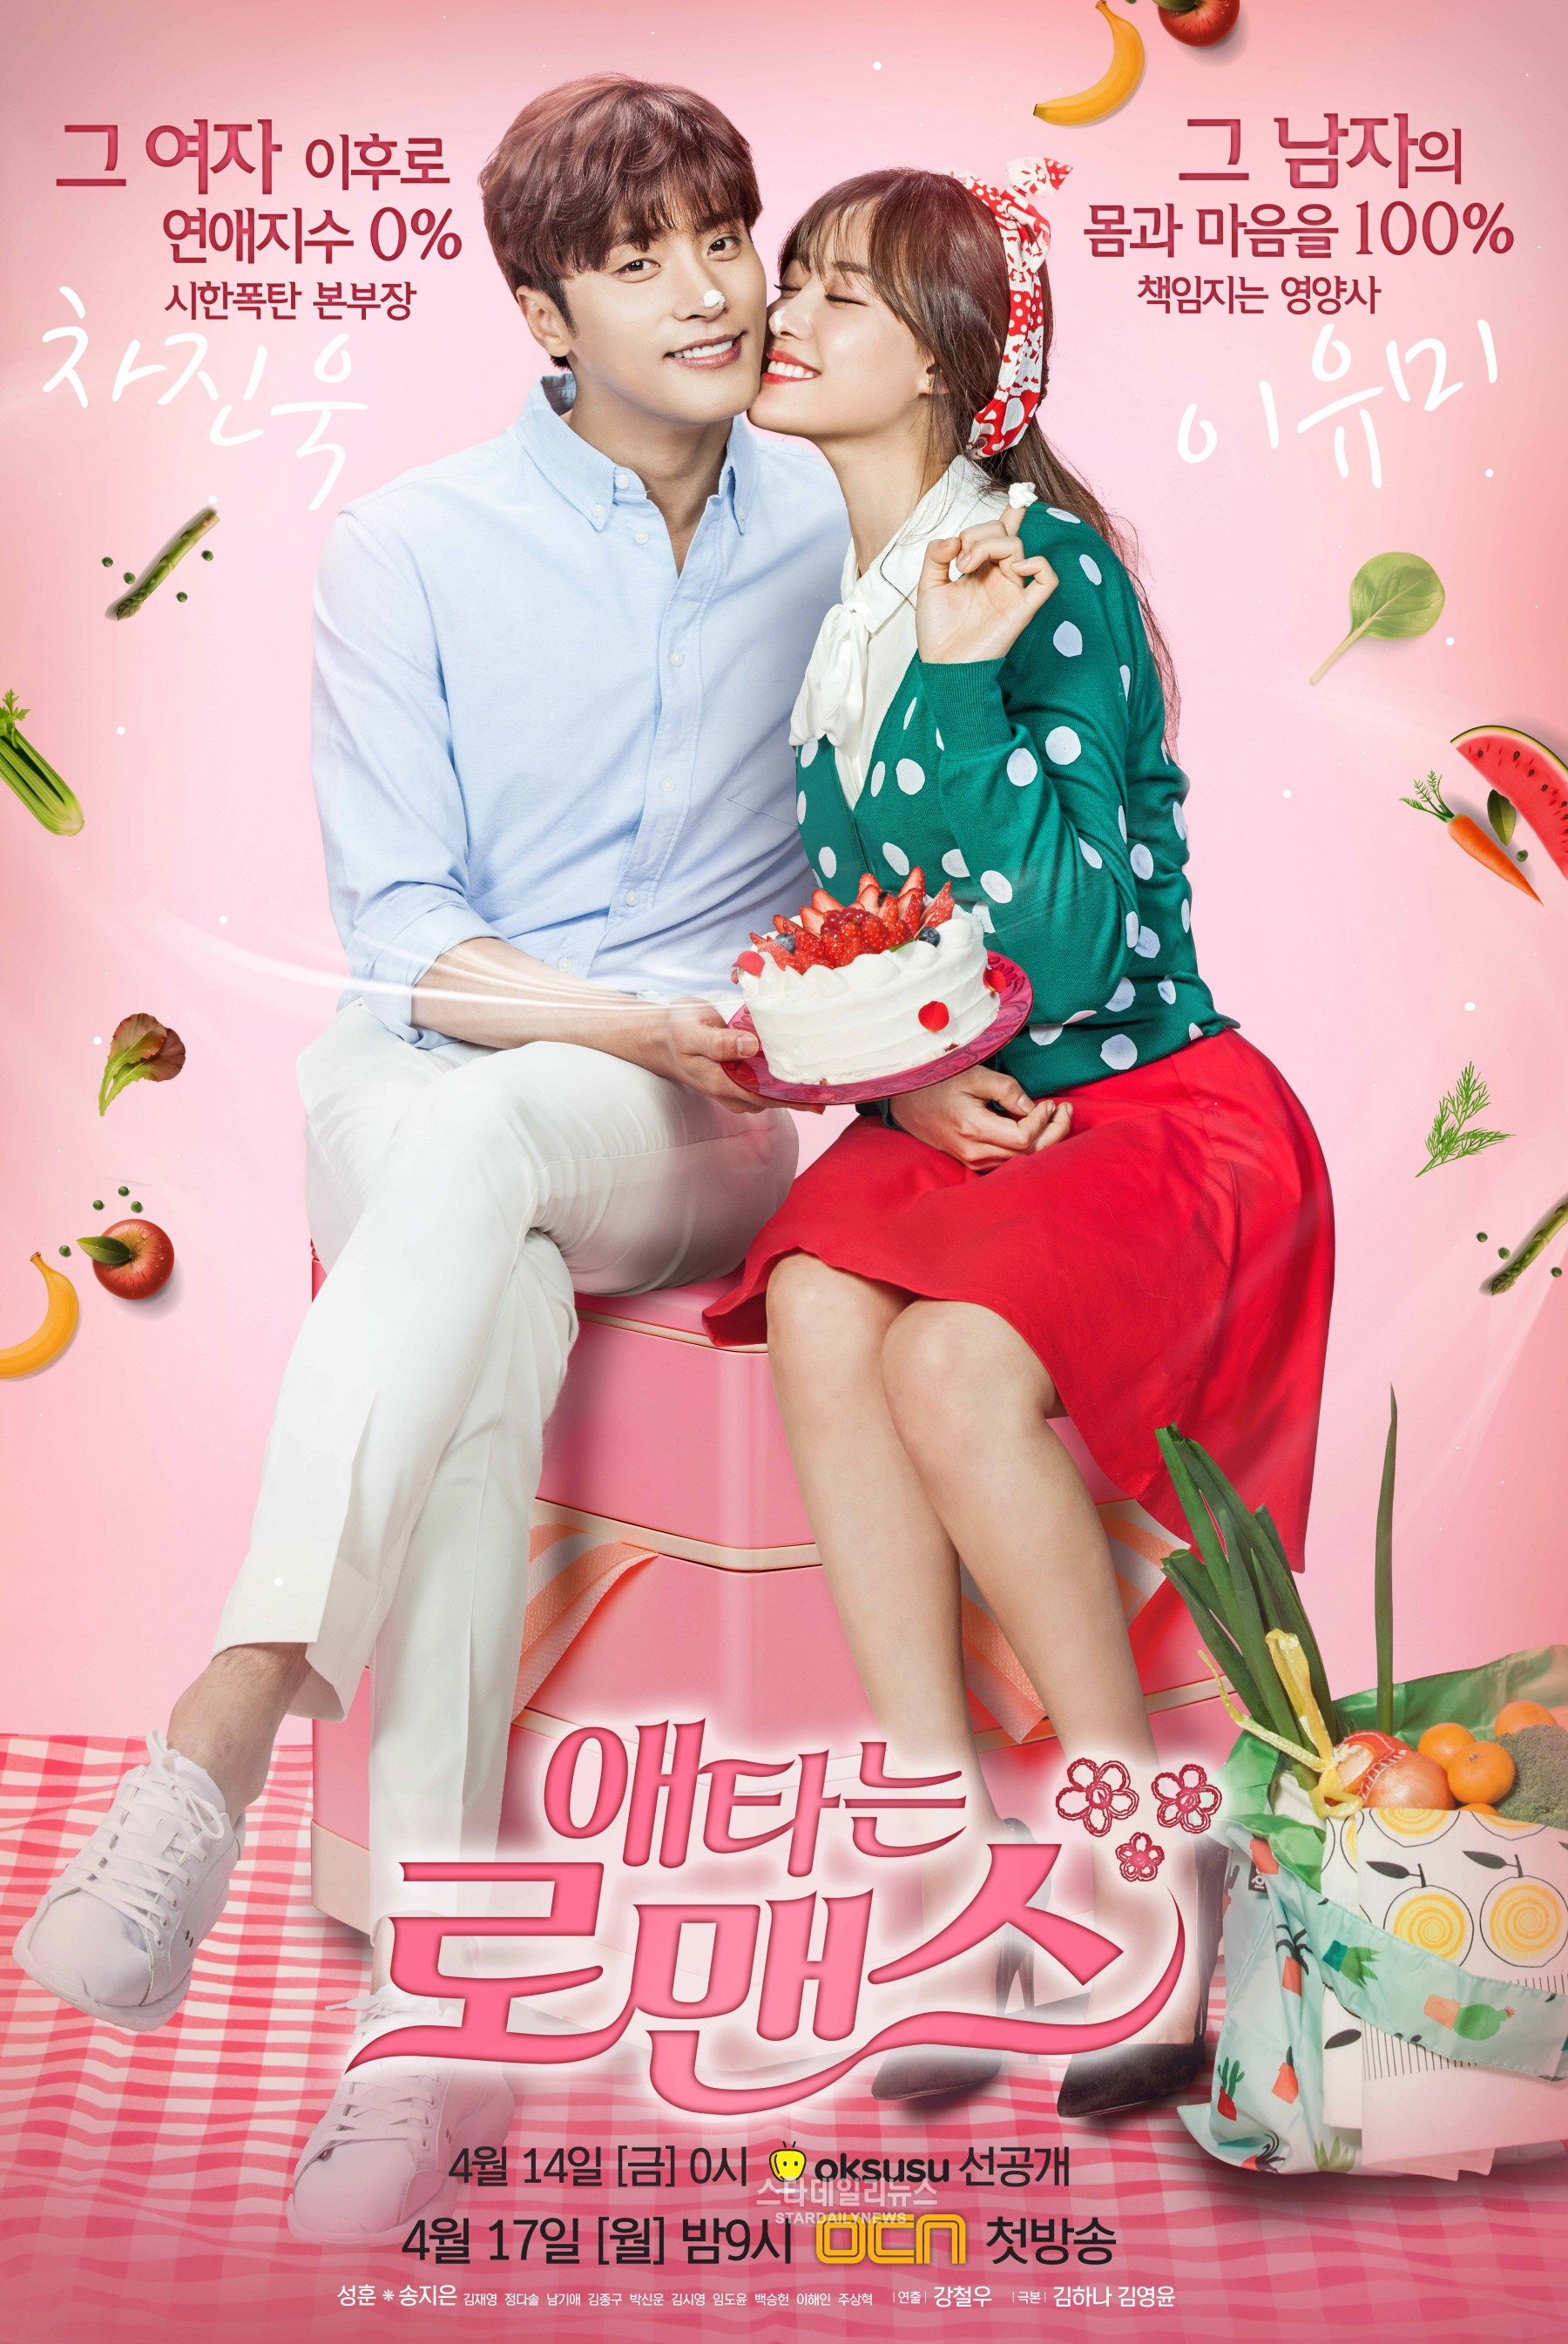 My Secret Romance Android Iphone Wallpaper 128833 Asiachan Kpop Image Board